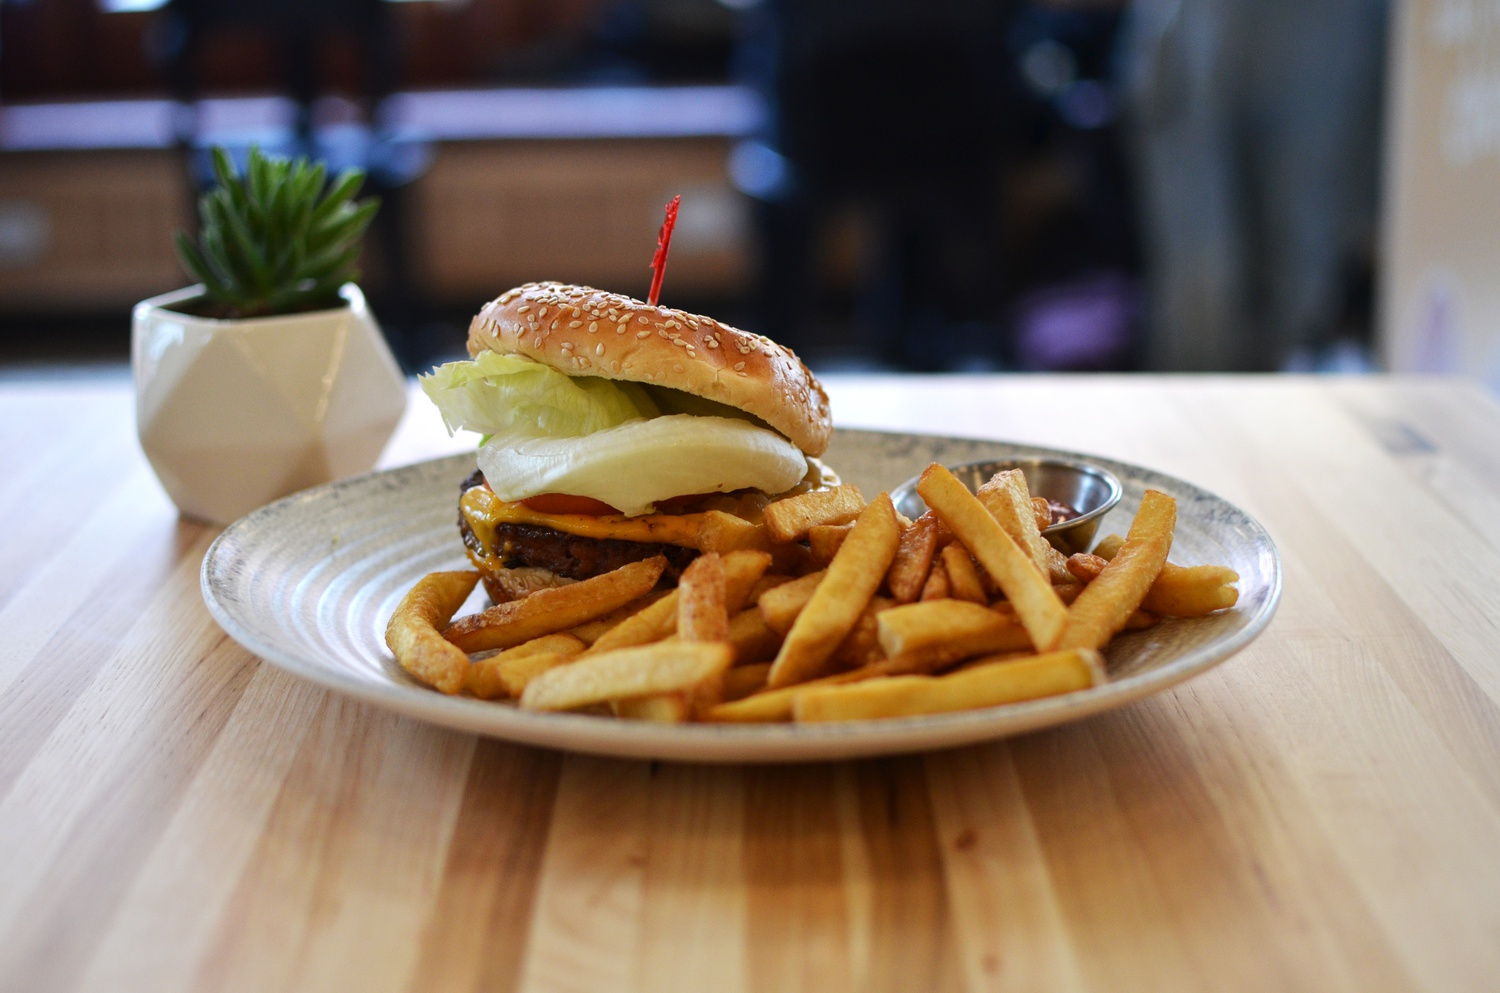 Veggie Grill, a vegetarian chain restaurant originally from the west coast, is bringing Harvard Square a different kind of comfort food.